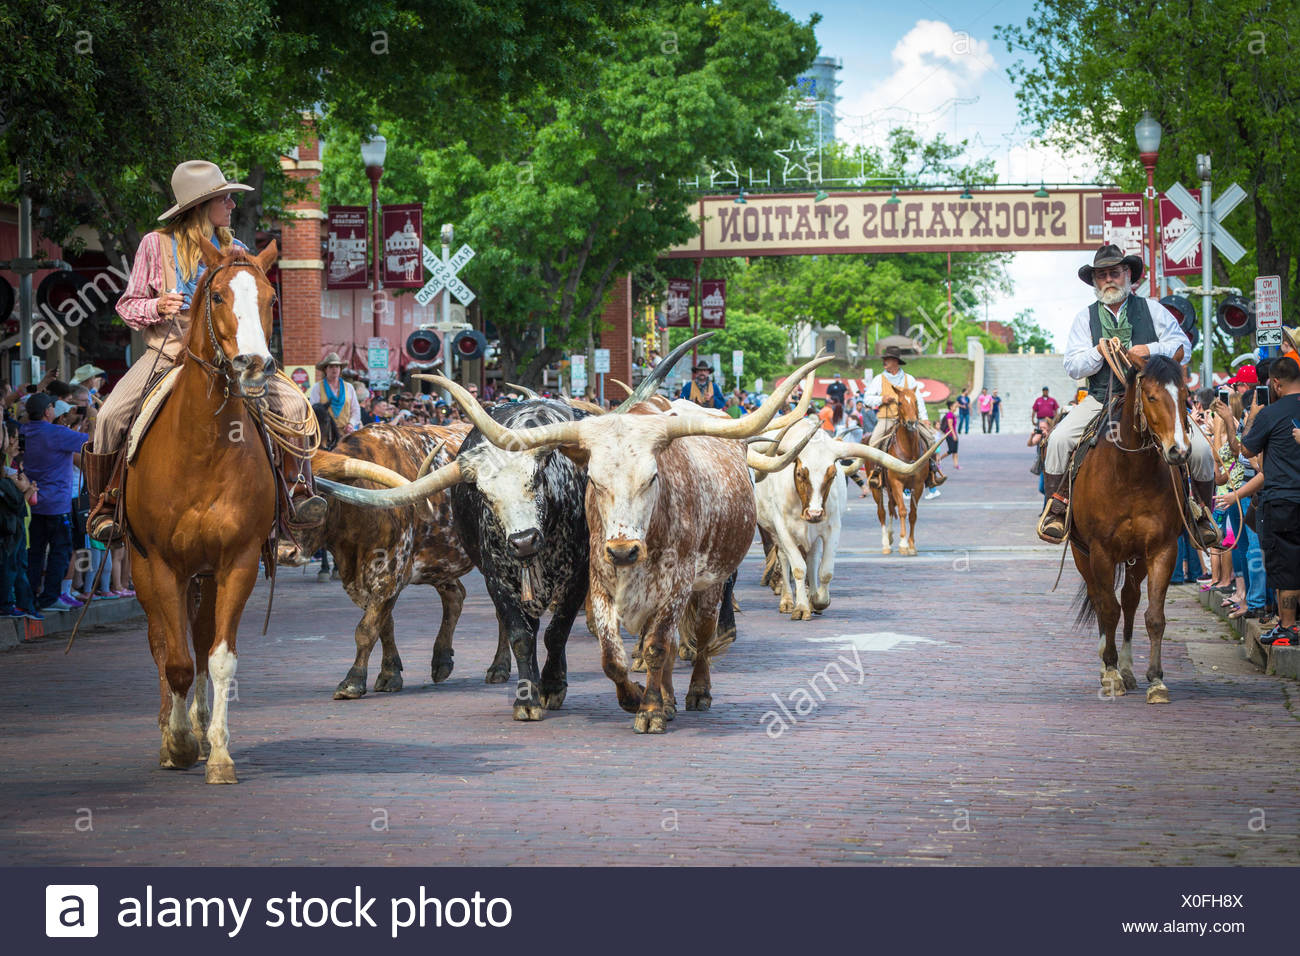 Cattle Drive Texas Longhorn Cattle With Cowboys And Cowgirl Stockyards Fort Worth Texas Usa Stock Photo Alamy